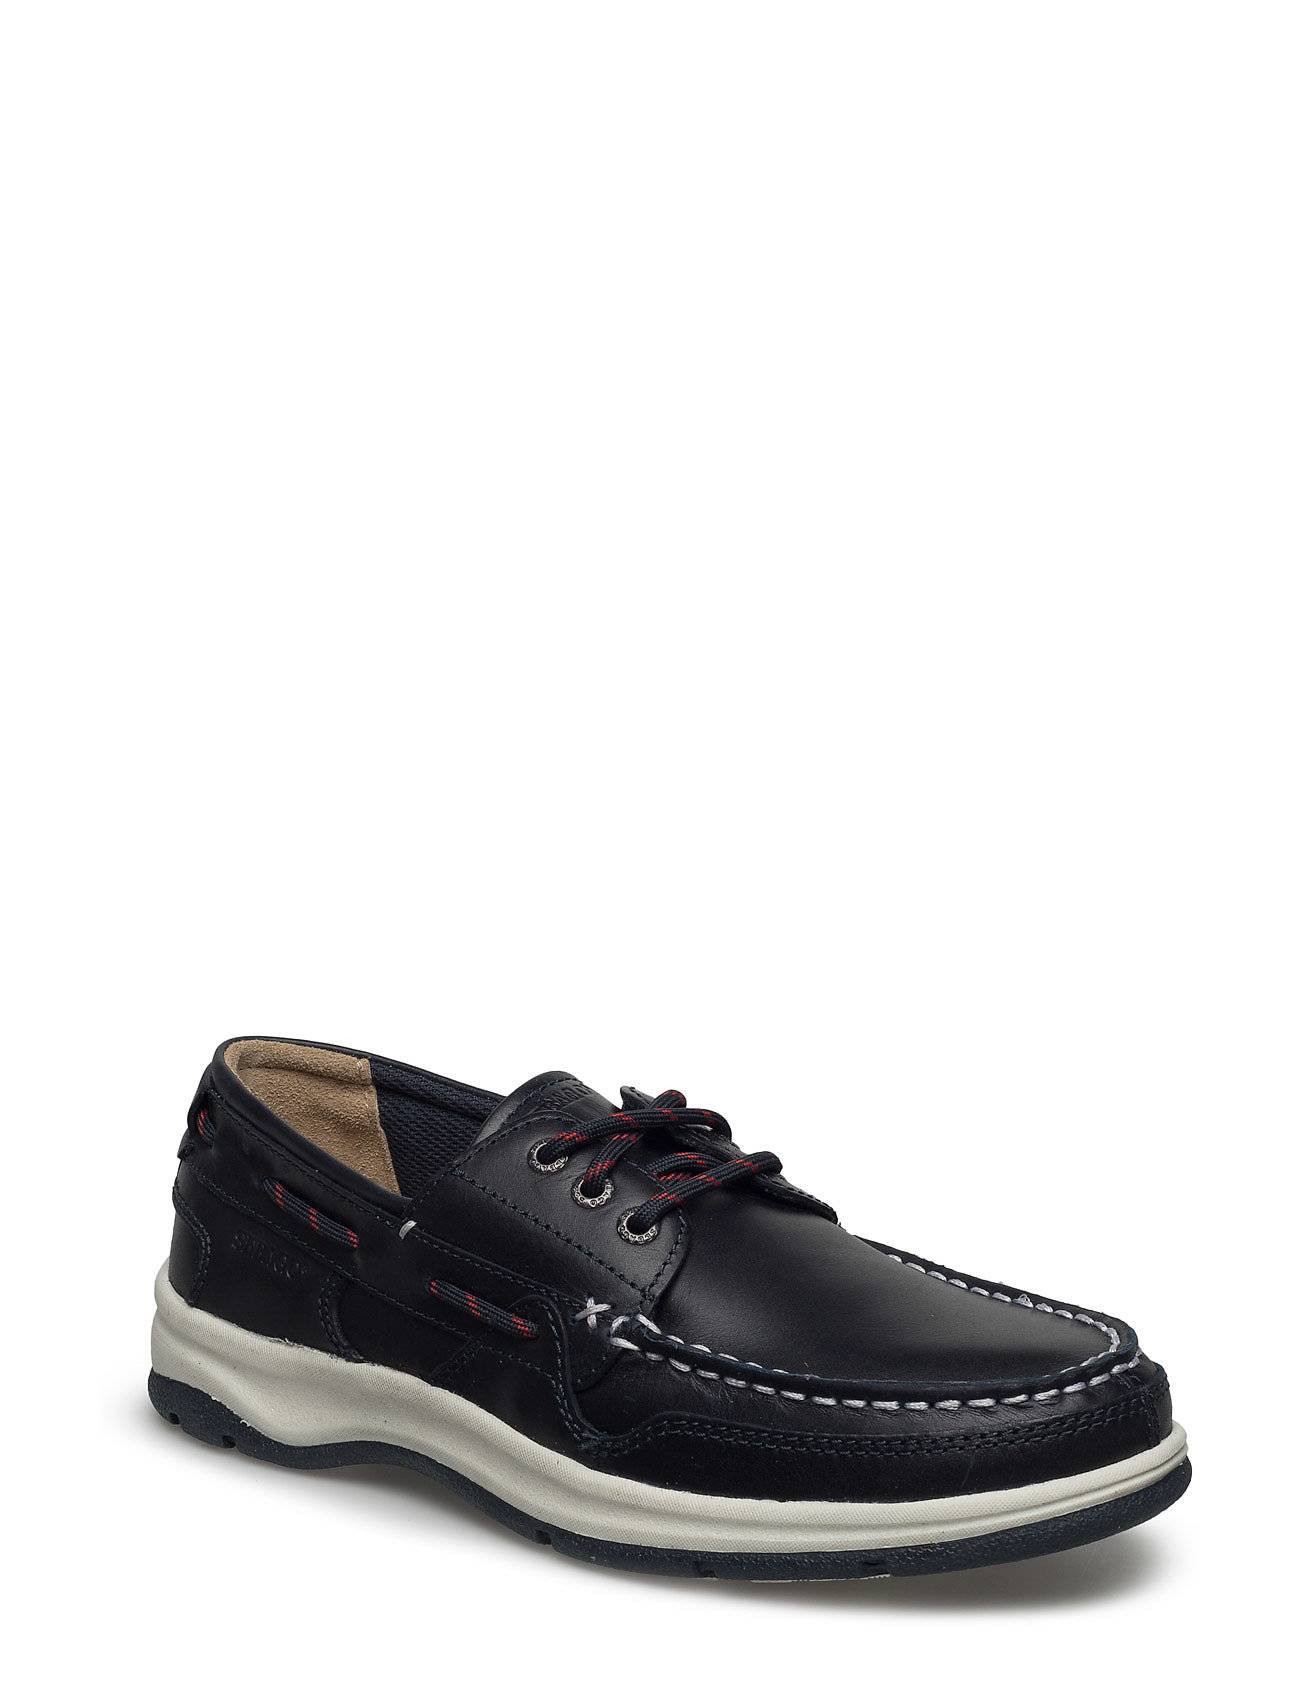 Sebago Brice Three Eye